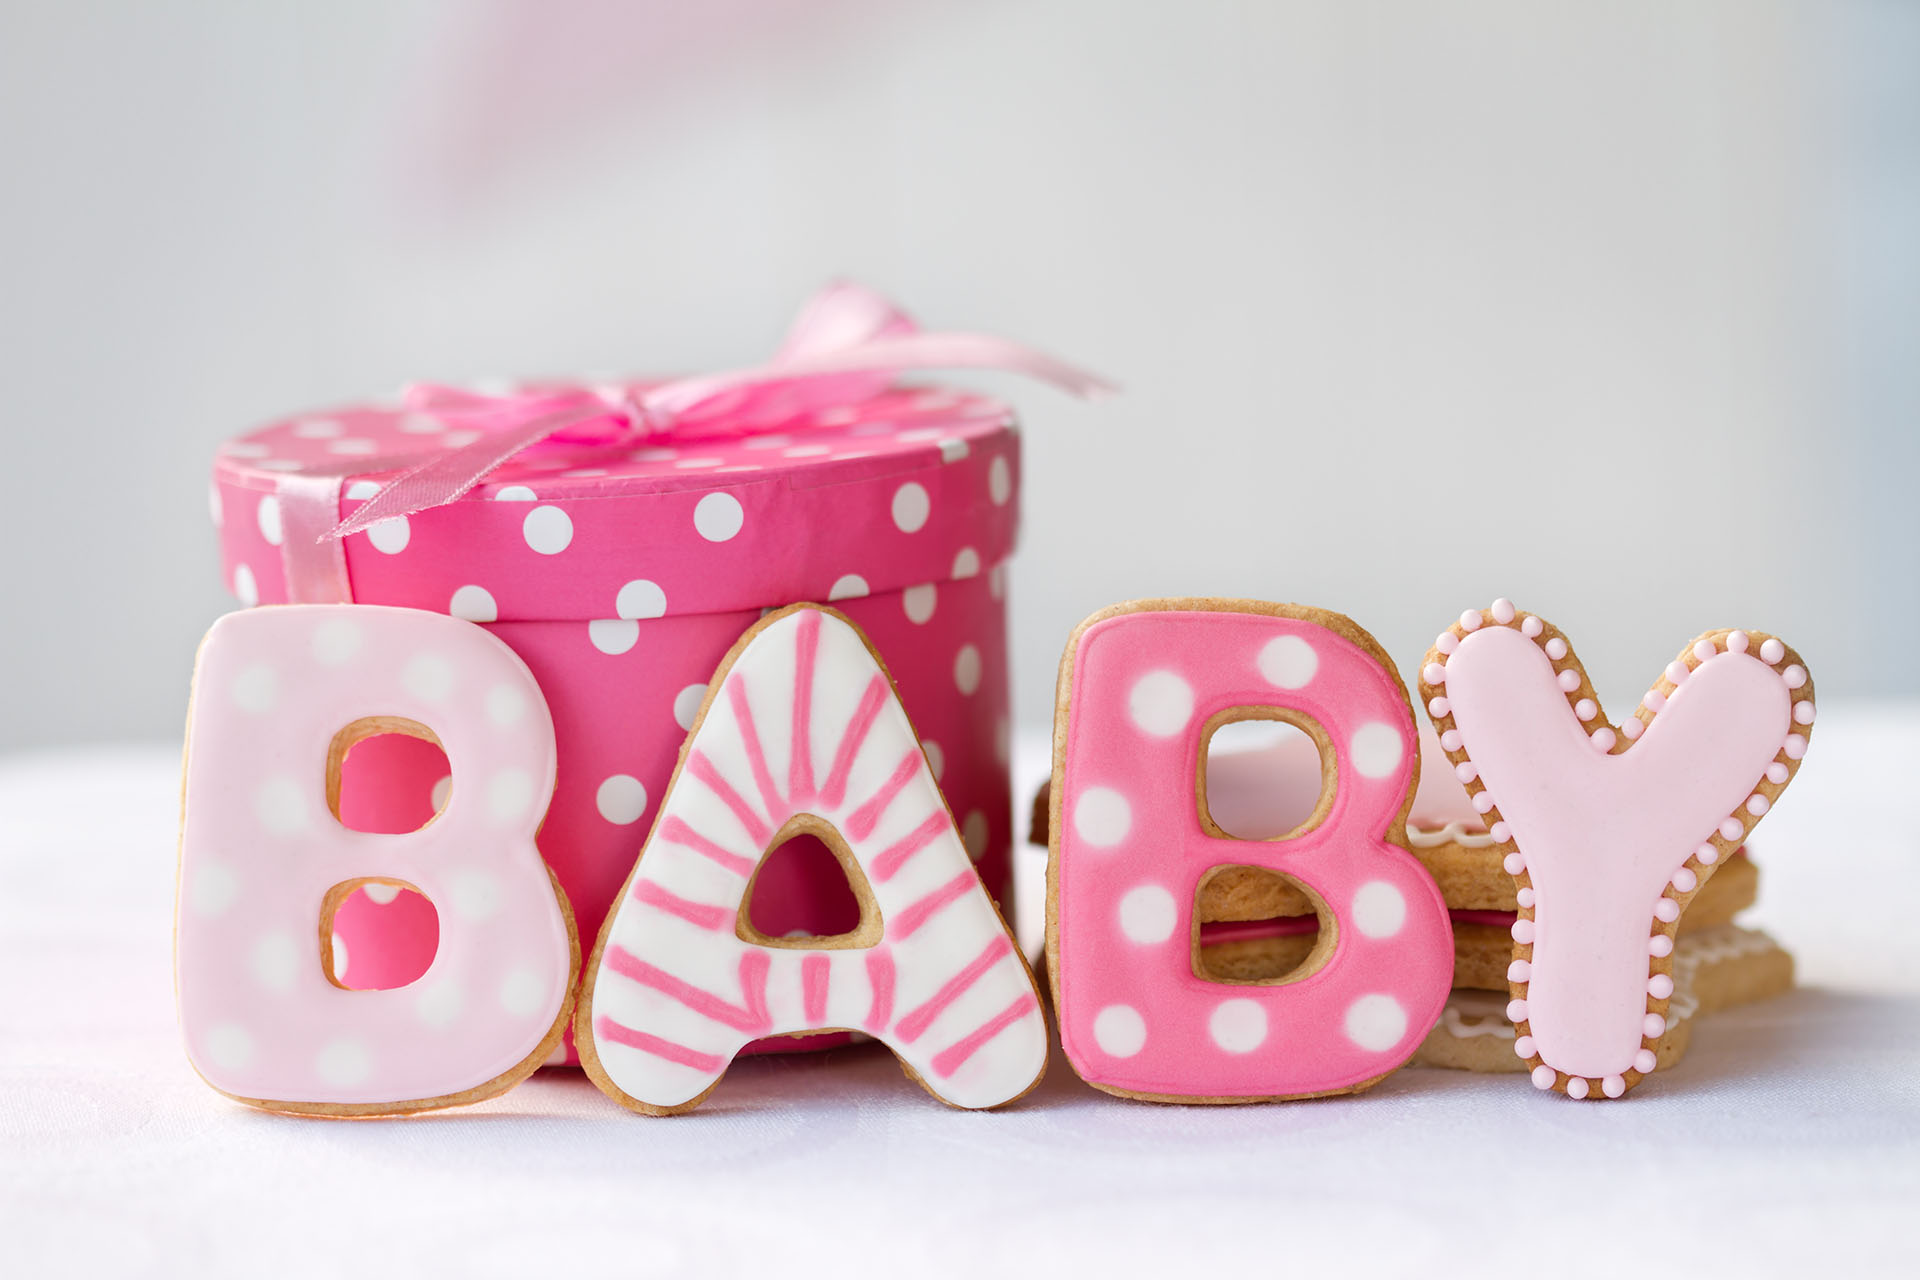 Top 5 Gender Reveal Party Gift Ideas